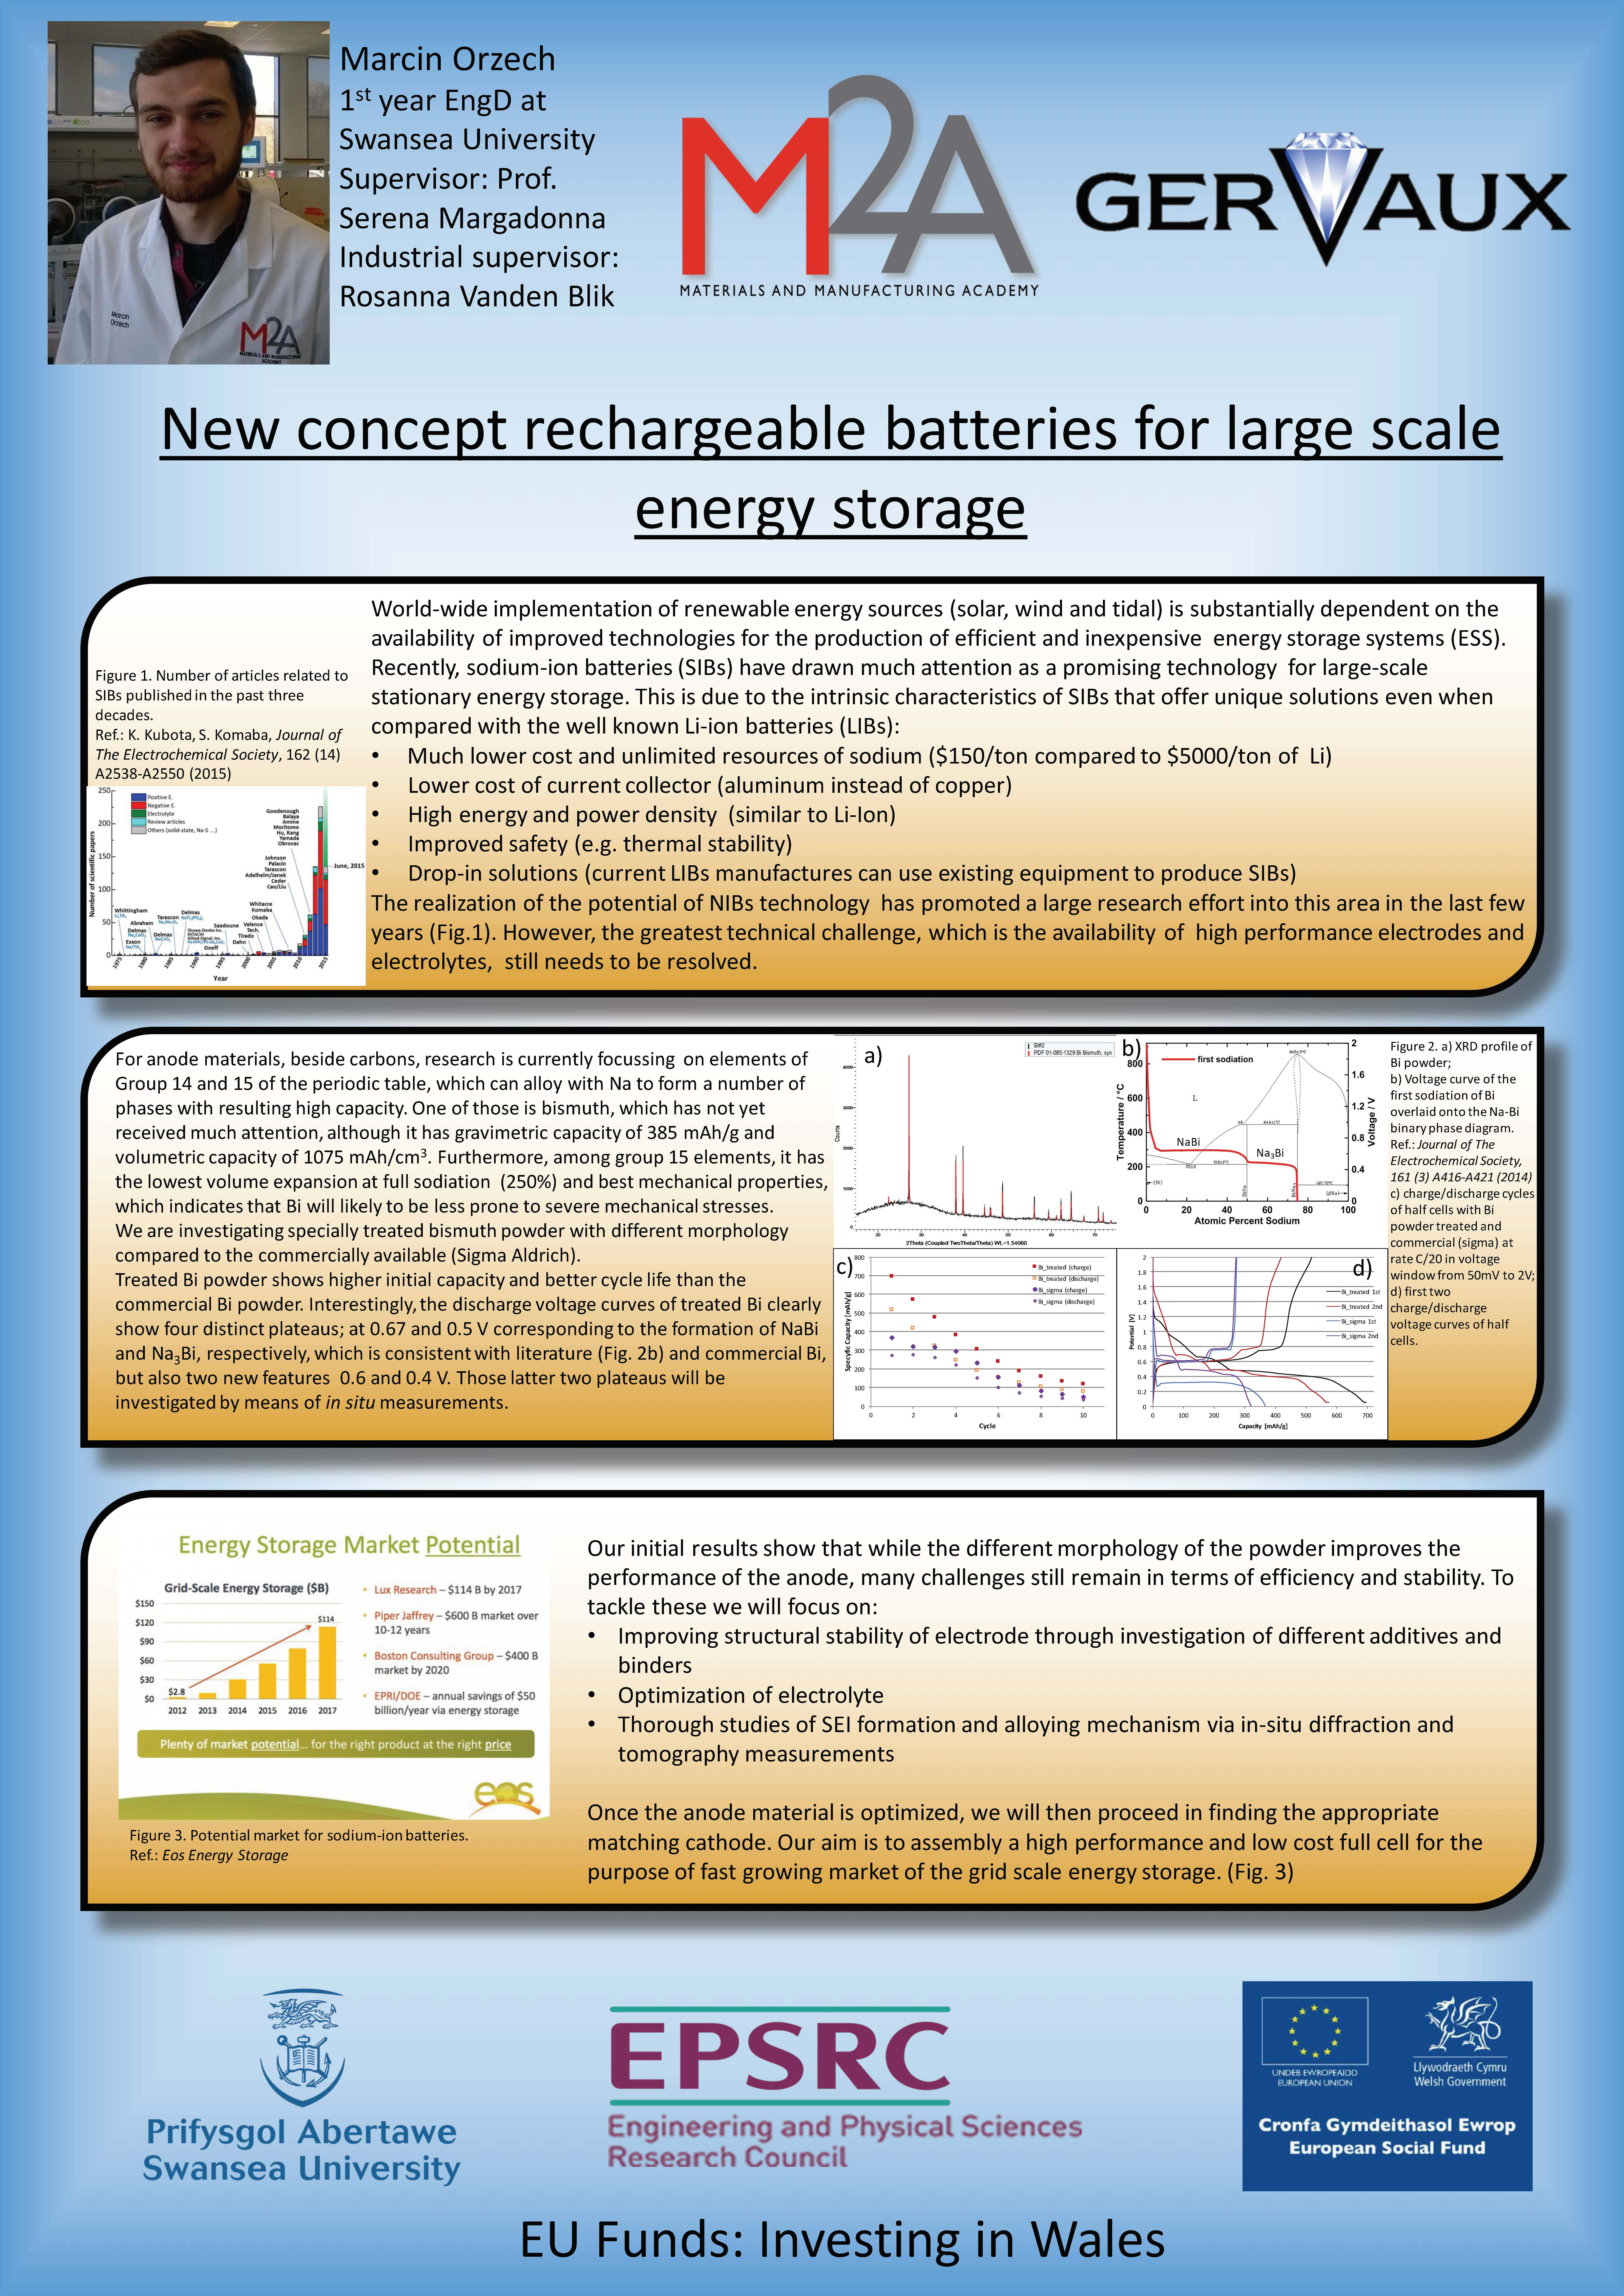 New concept rechargeable batteries for large scale energy storage